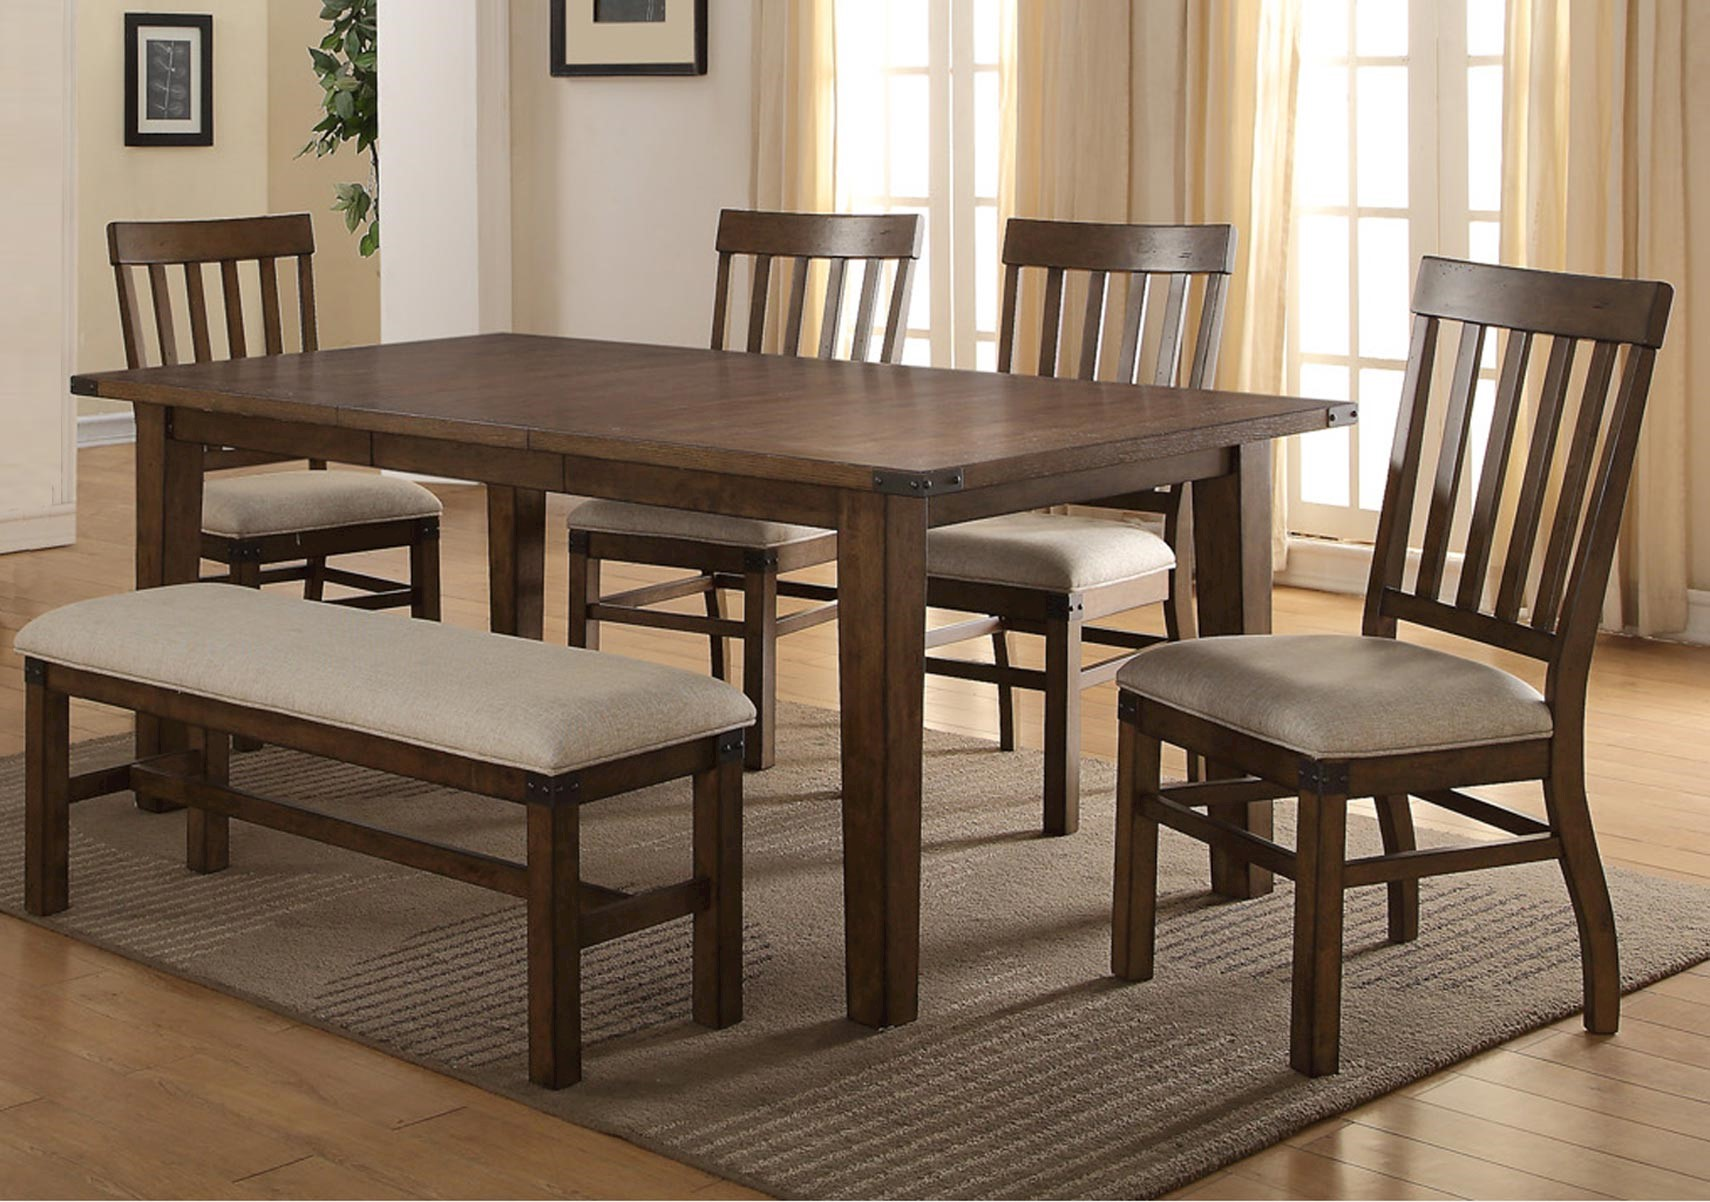 Hailee 6 Pc Dining Set